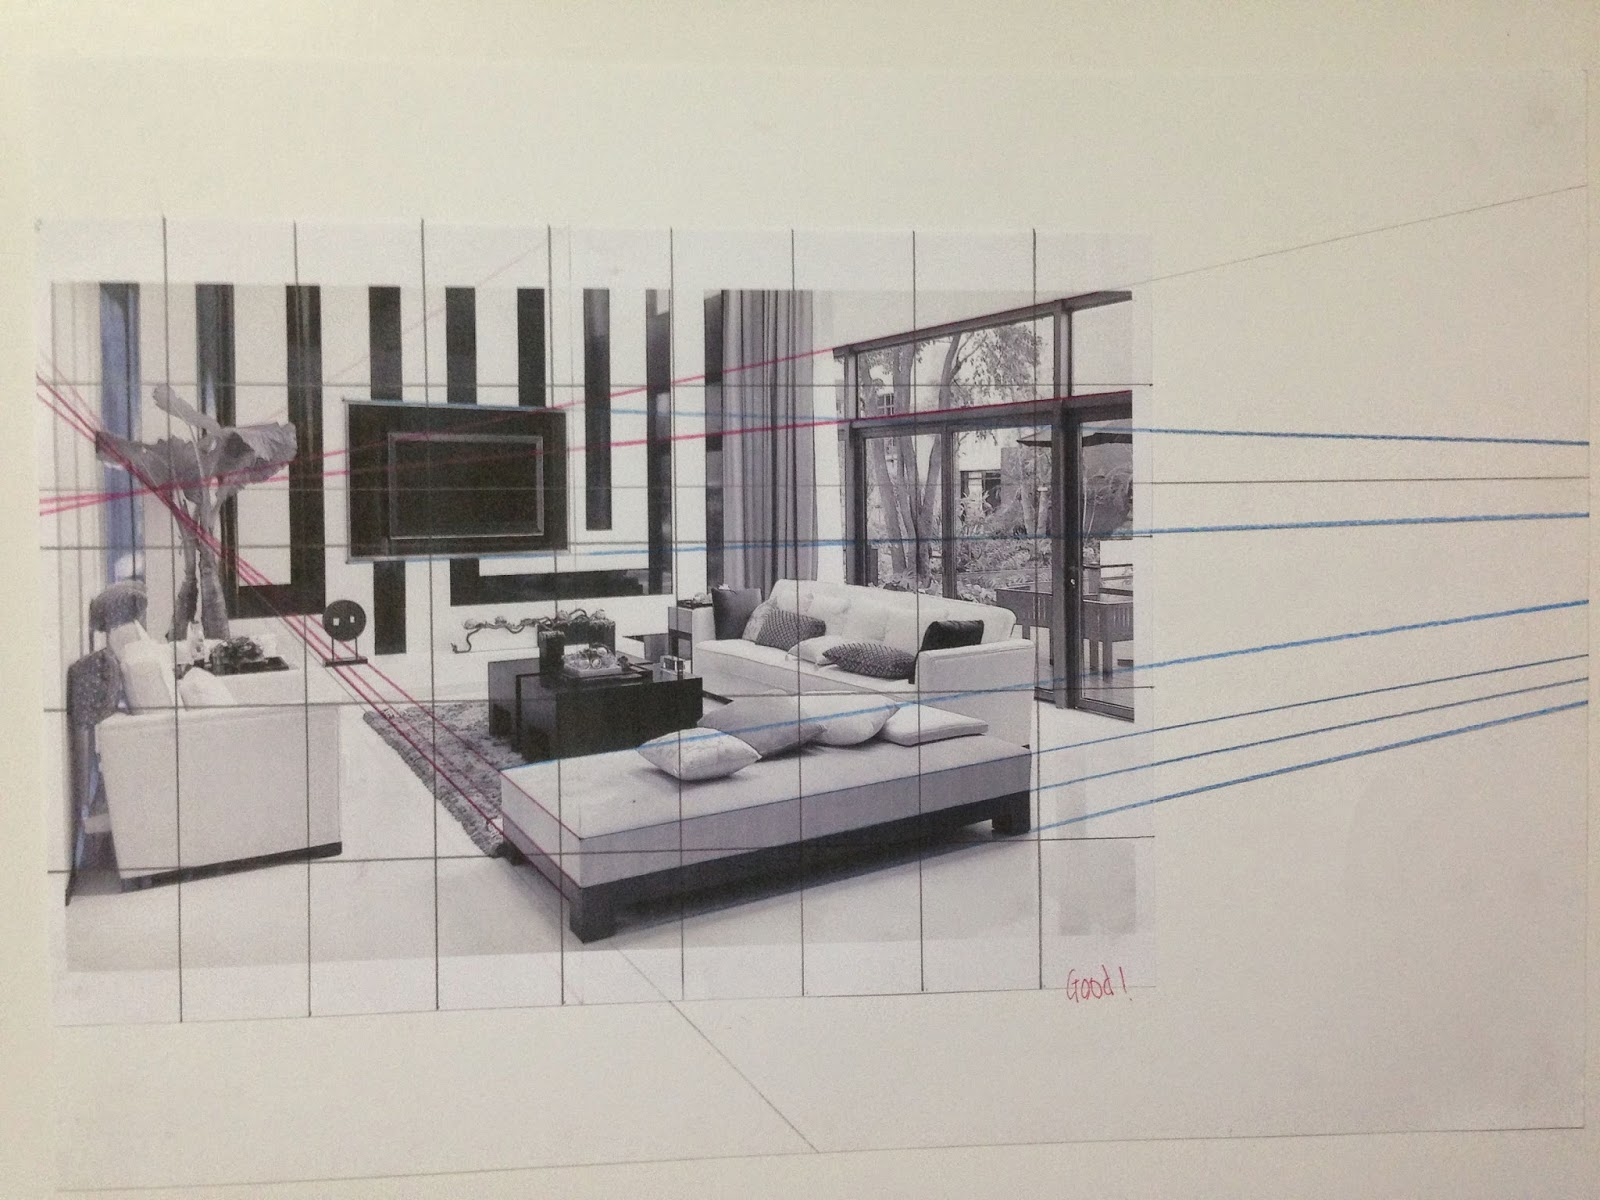 3 Point Perspective Interior Drawing. 3 Point Perspective Interior Drawing   Iscblog